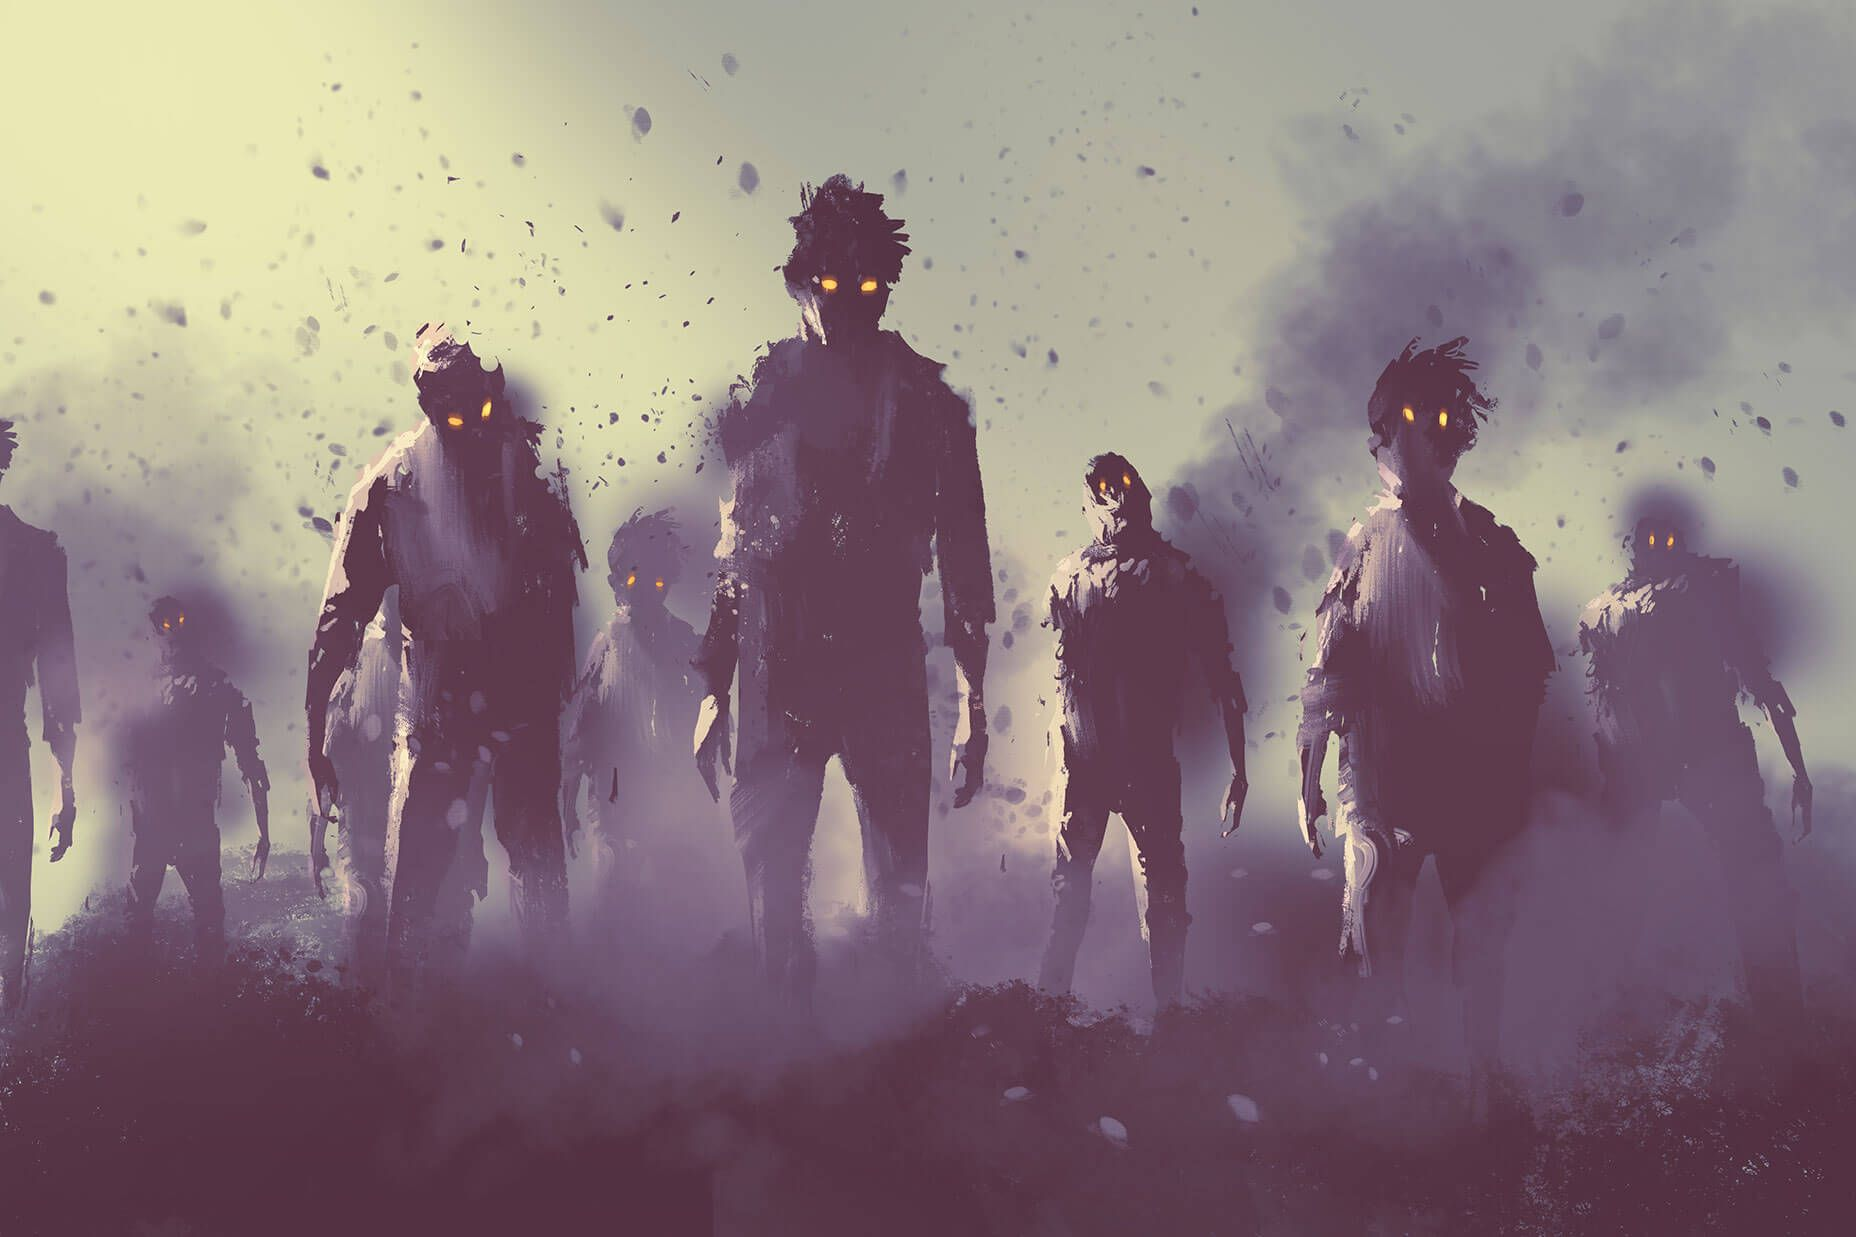 10 Spooky Designs To Get You Inspired This Halloween In 2021 Zombies Apocalypse Art Zombie Wallpaper Zombie